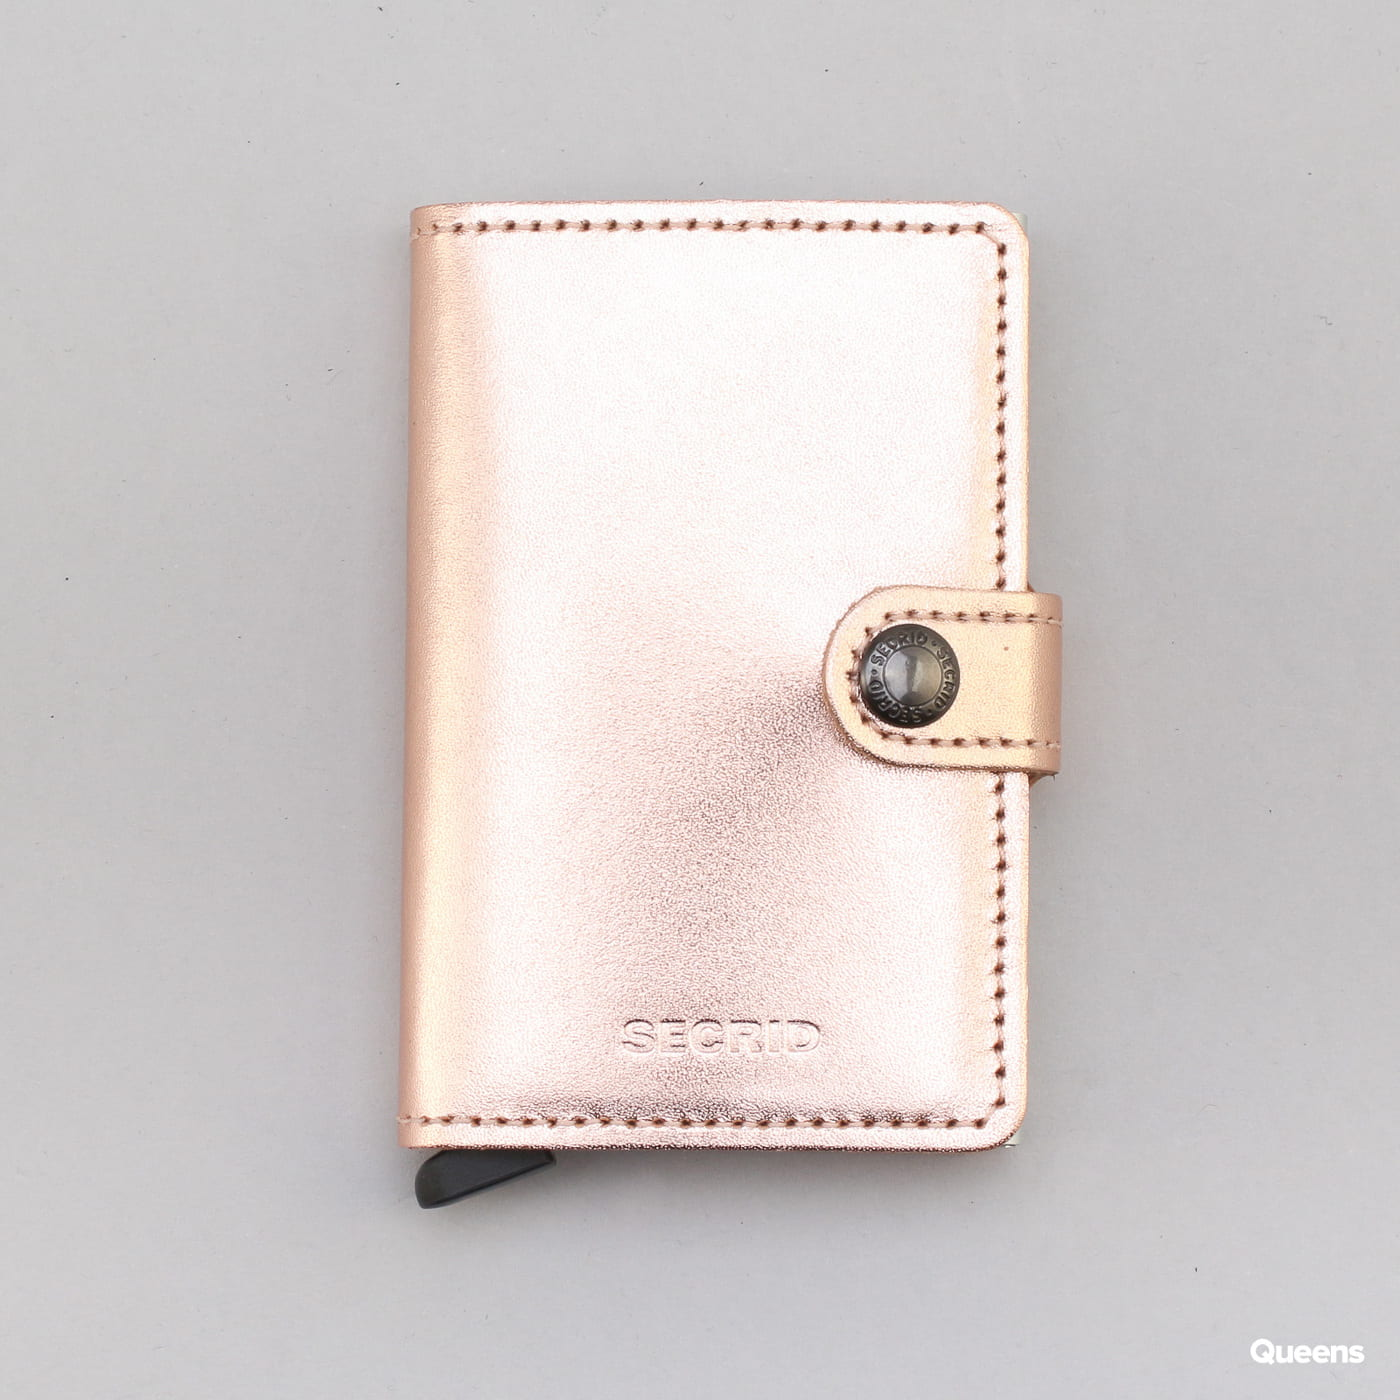 SECRID Miniwallet Metallic golden pink